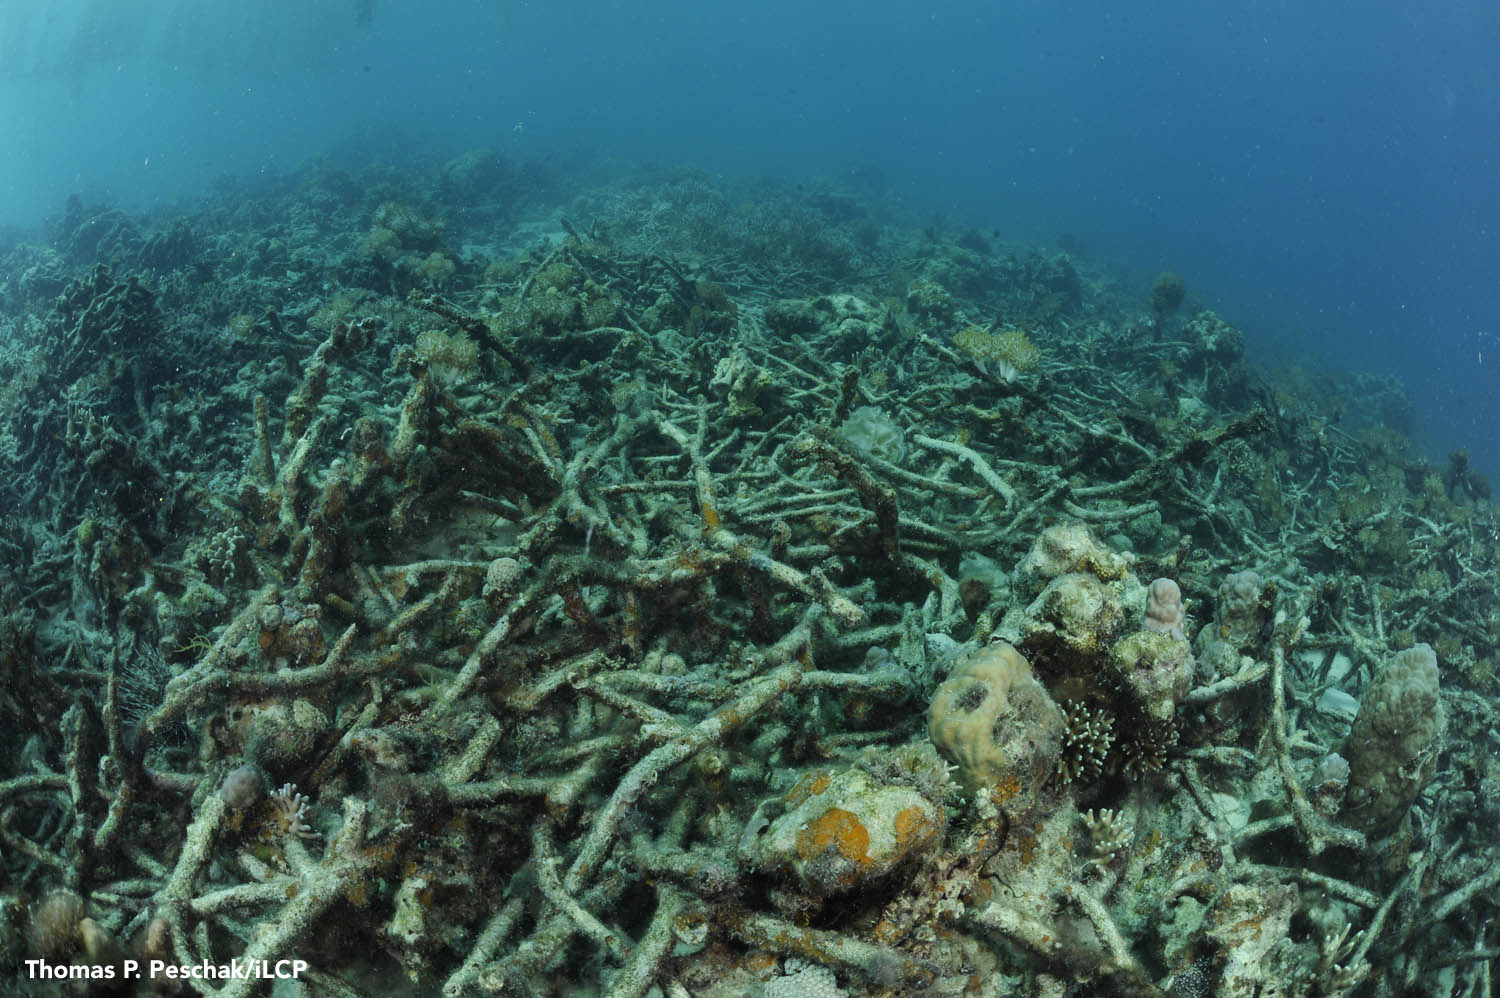 A portrait of devastation: This section of reef was flattened by an explosion. Blasting kills corals and deprives fishes and other animals of vital habitat. Thomas P. Peshak/iLCP